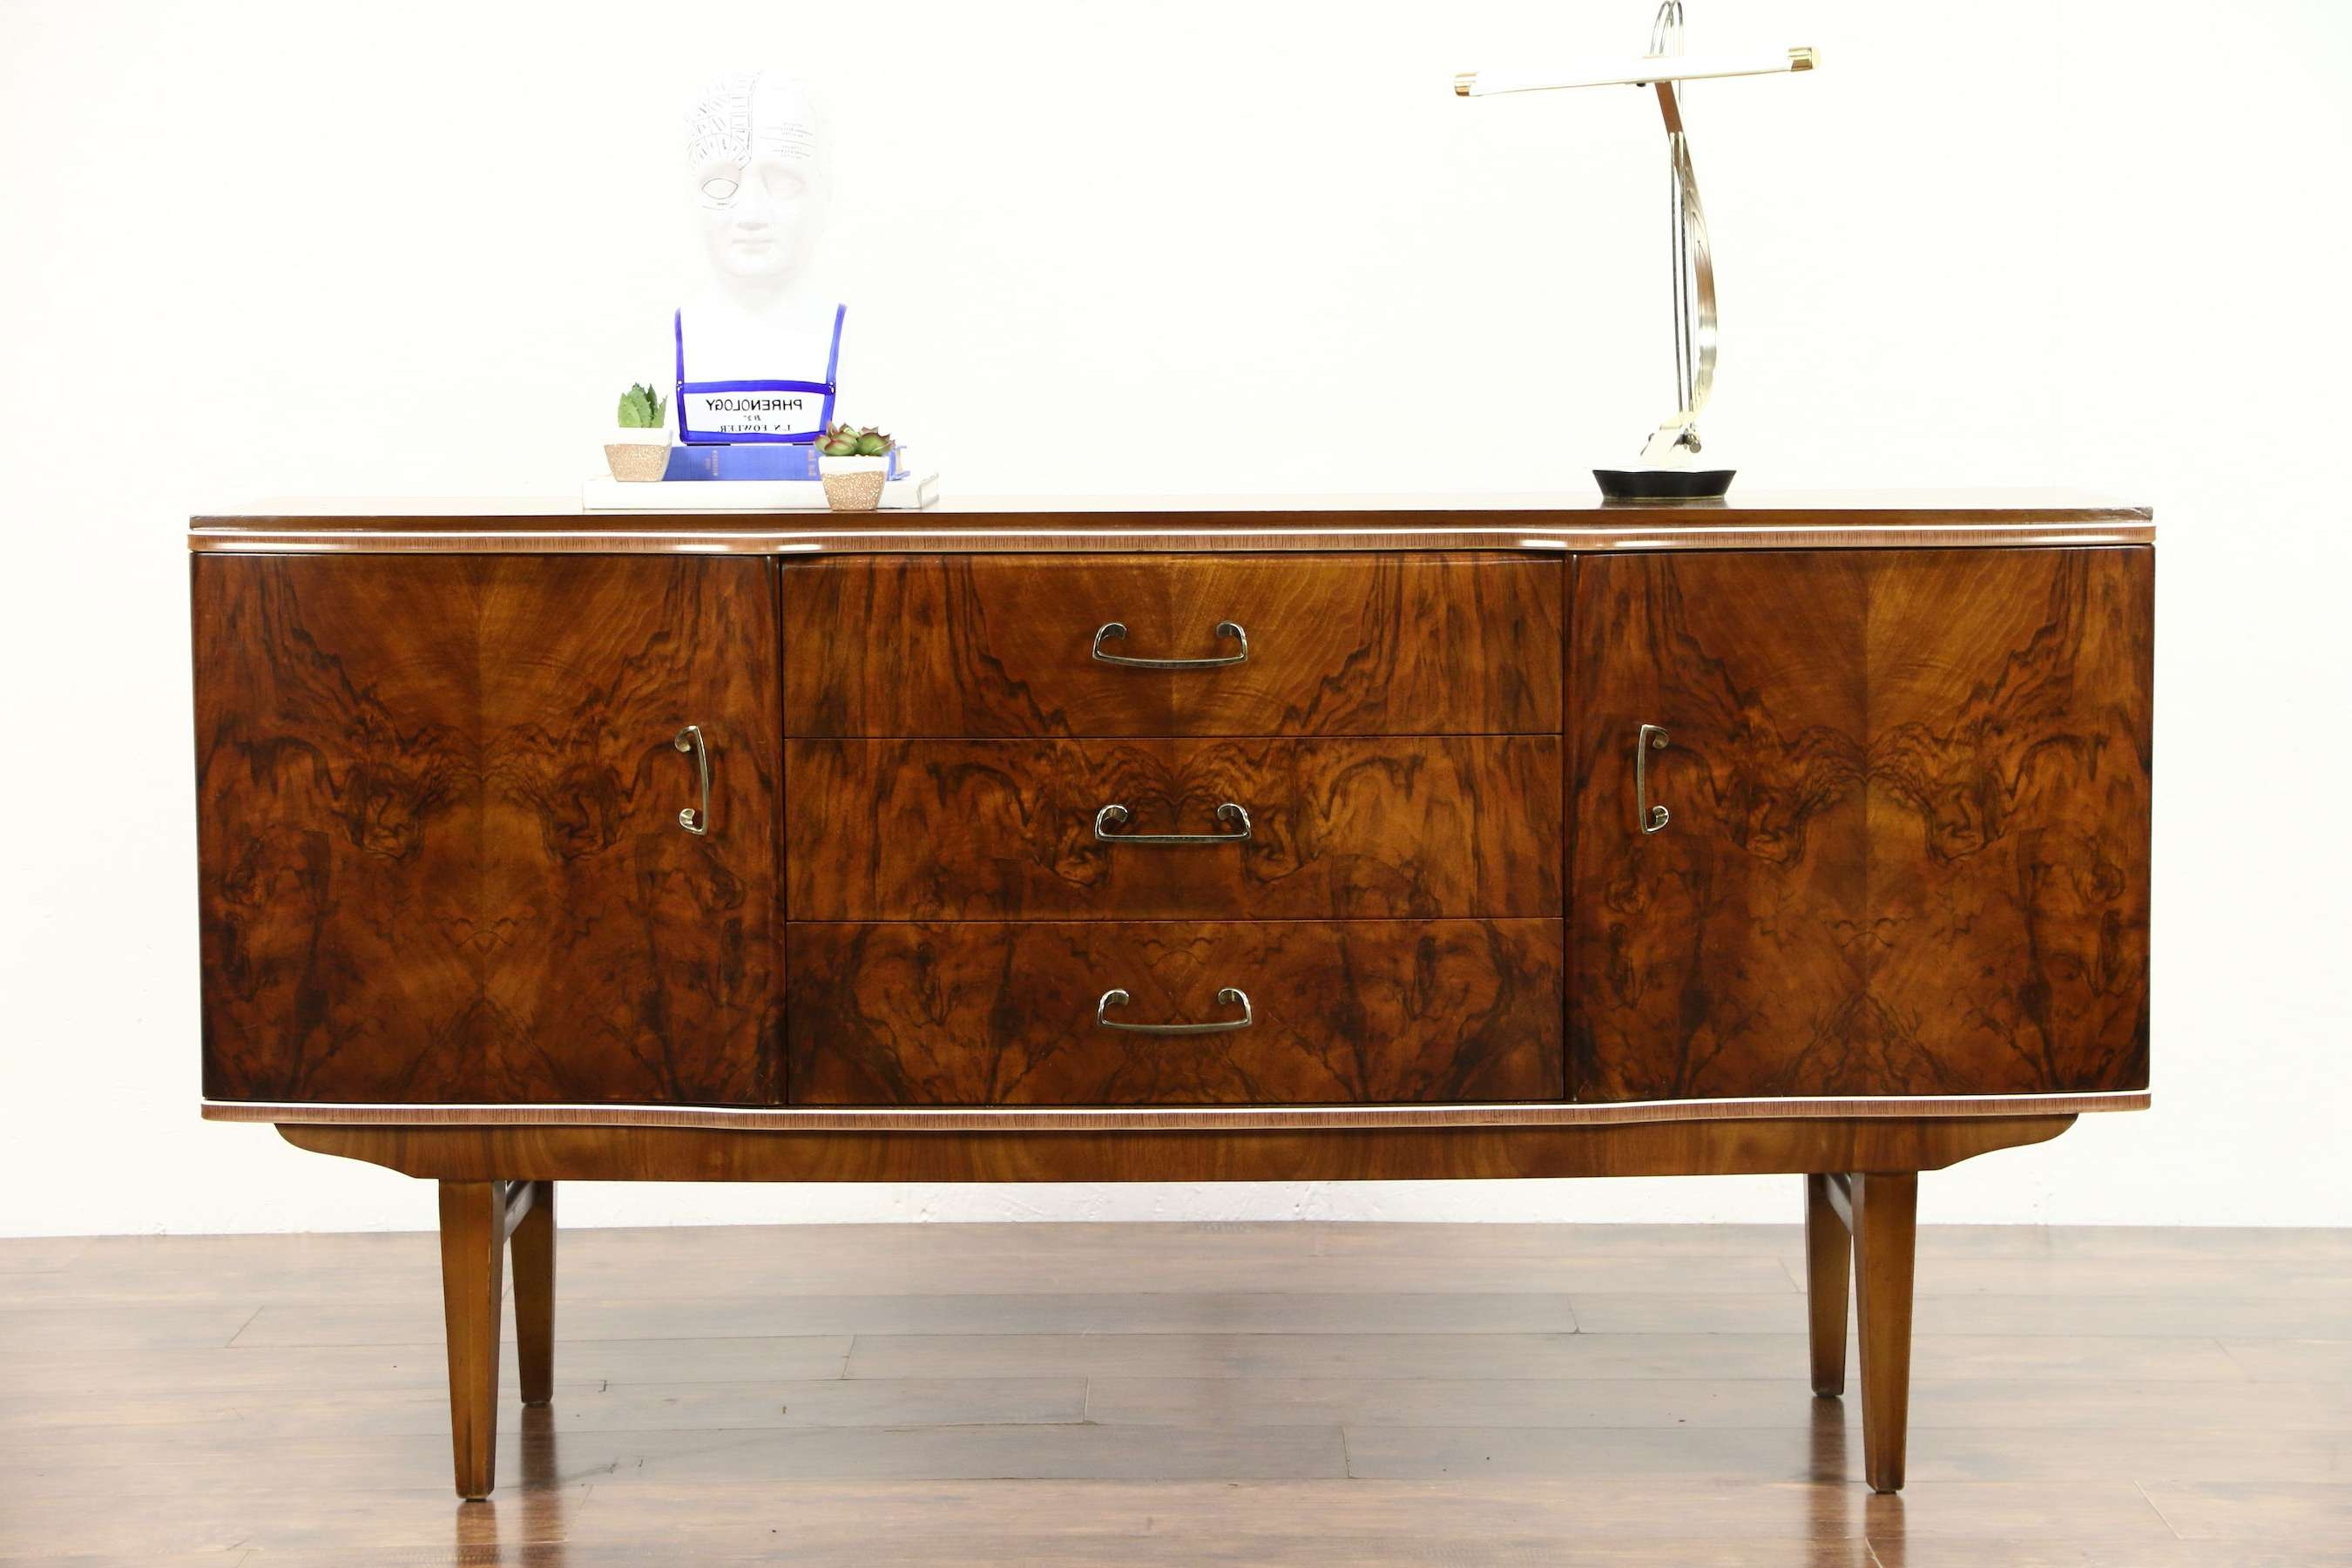 Sold – Art Deco 1940's Vintage Burl Sideboard, Server, Buffet Or Pertaining To Sideboards Bar Cabinet (View 13 of 20)